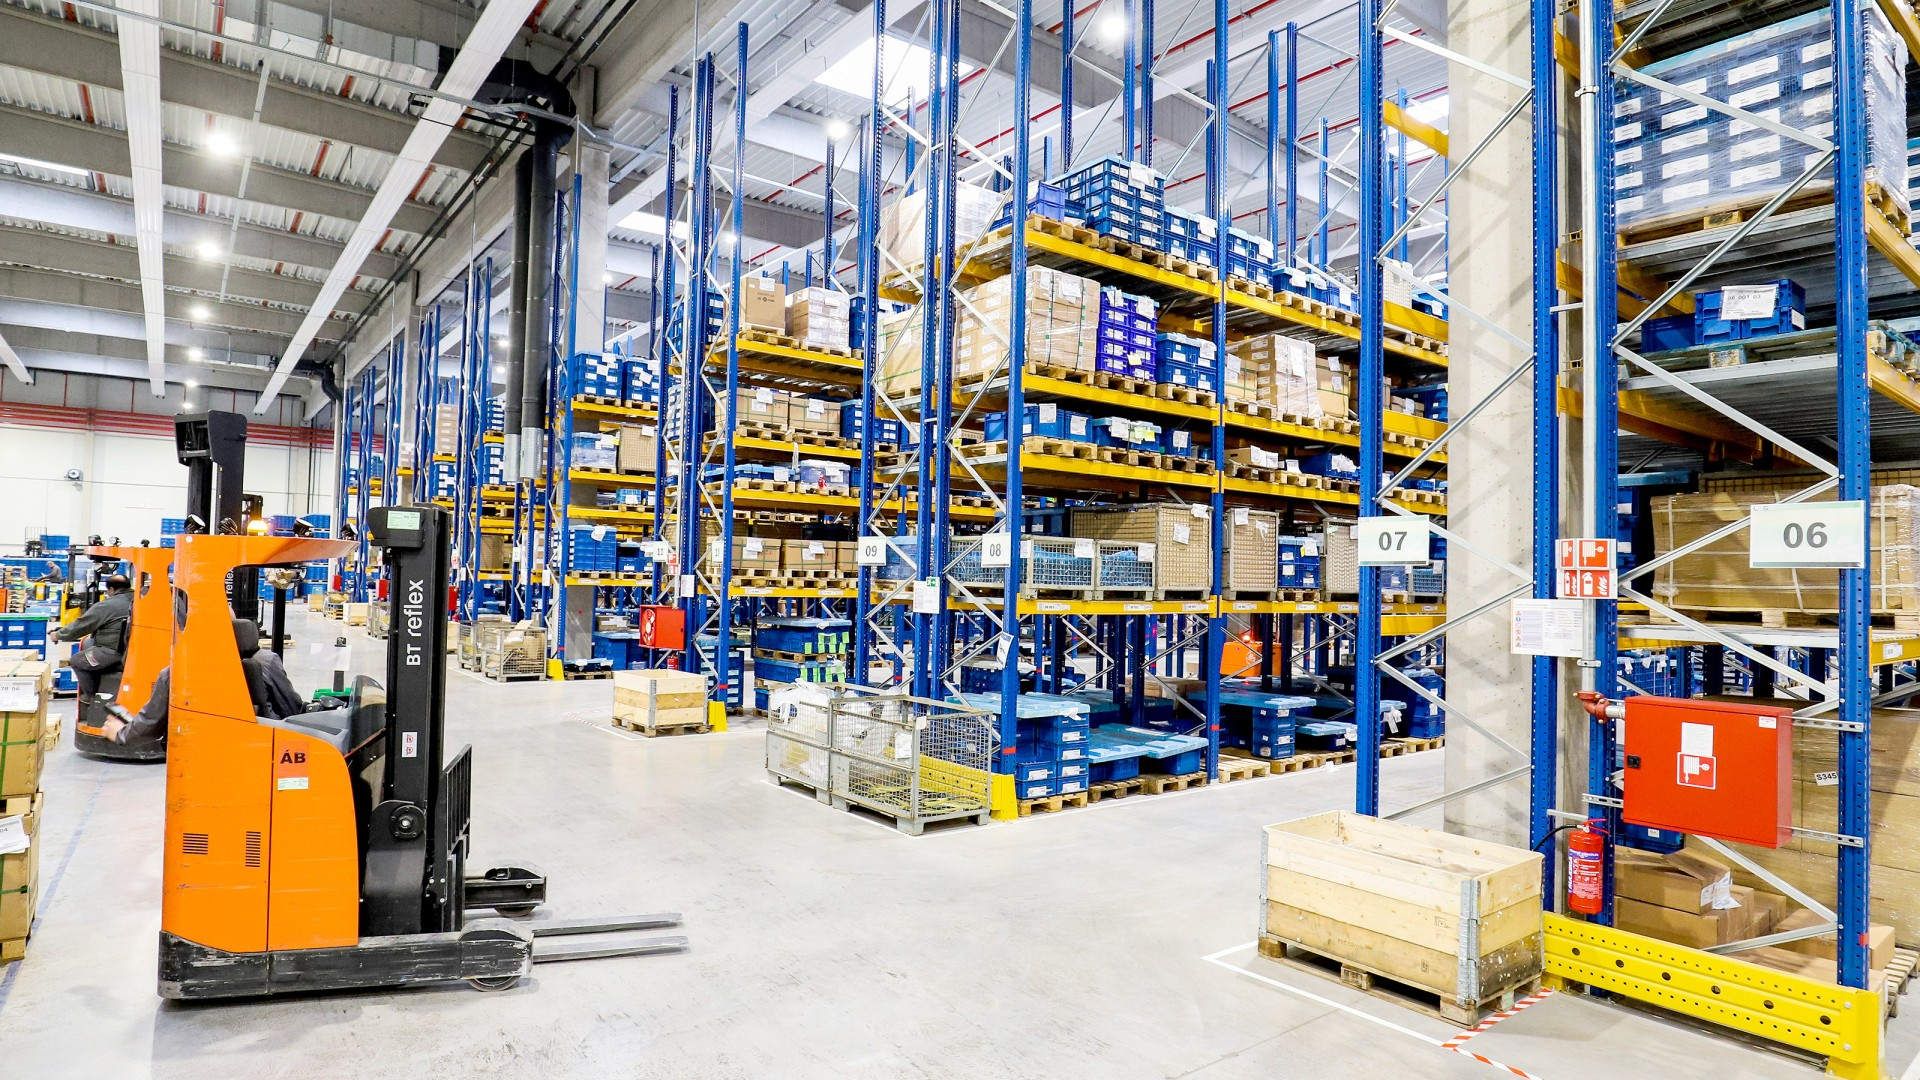 High racks and forklift in a logistics center